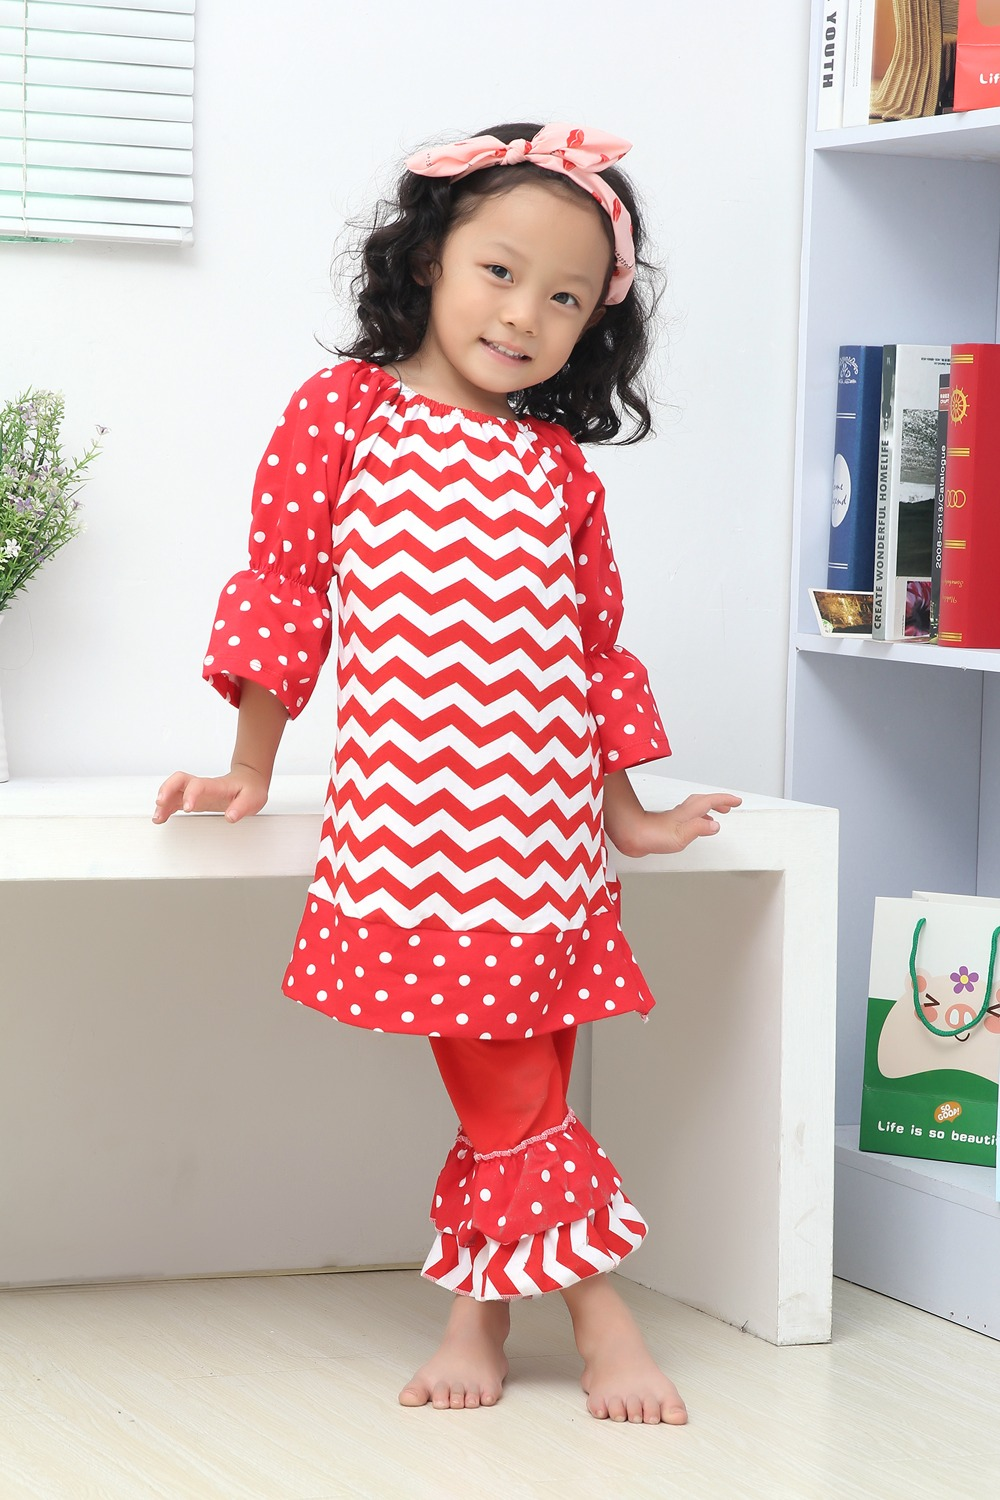 christmas clothes girls xmas Outfit girl boutique ruffle pants long sleeve baby  girl christmas red white chevron dot outfits-in Clothing Sets from Mother  ... de94b7f89a